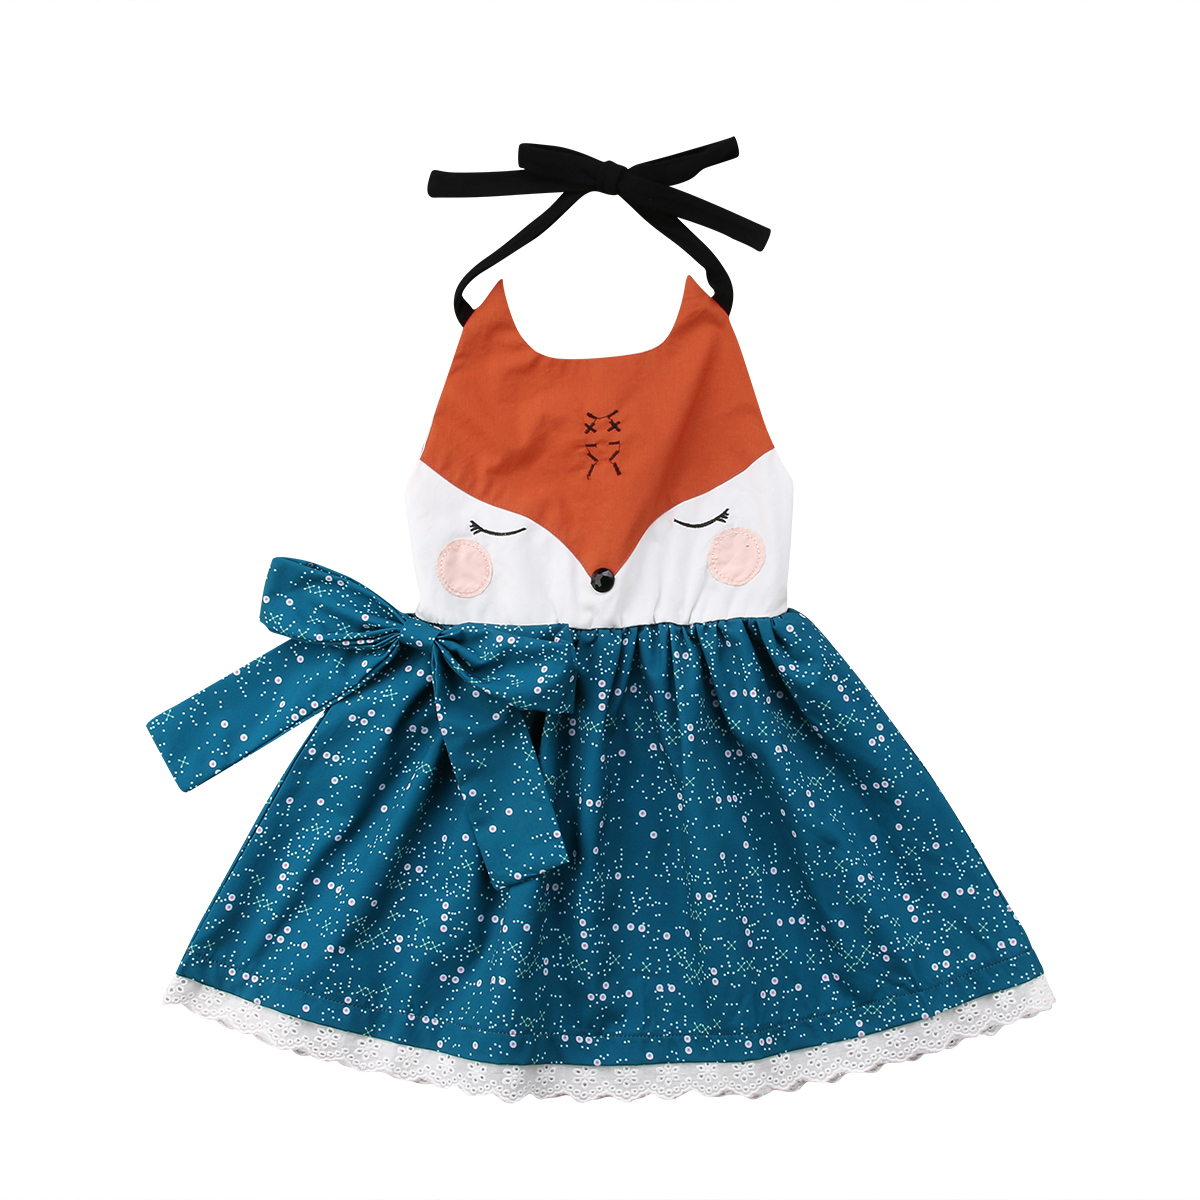 25045670b1d0 Buy kids halter neck dress and get free shipping on AliExpress.com